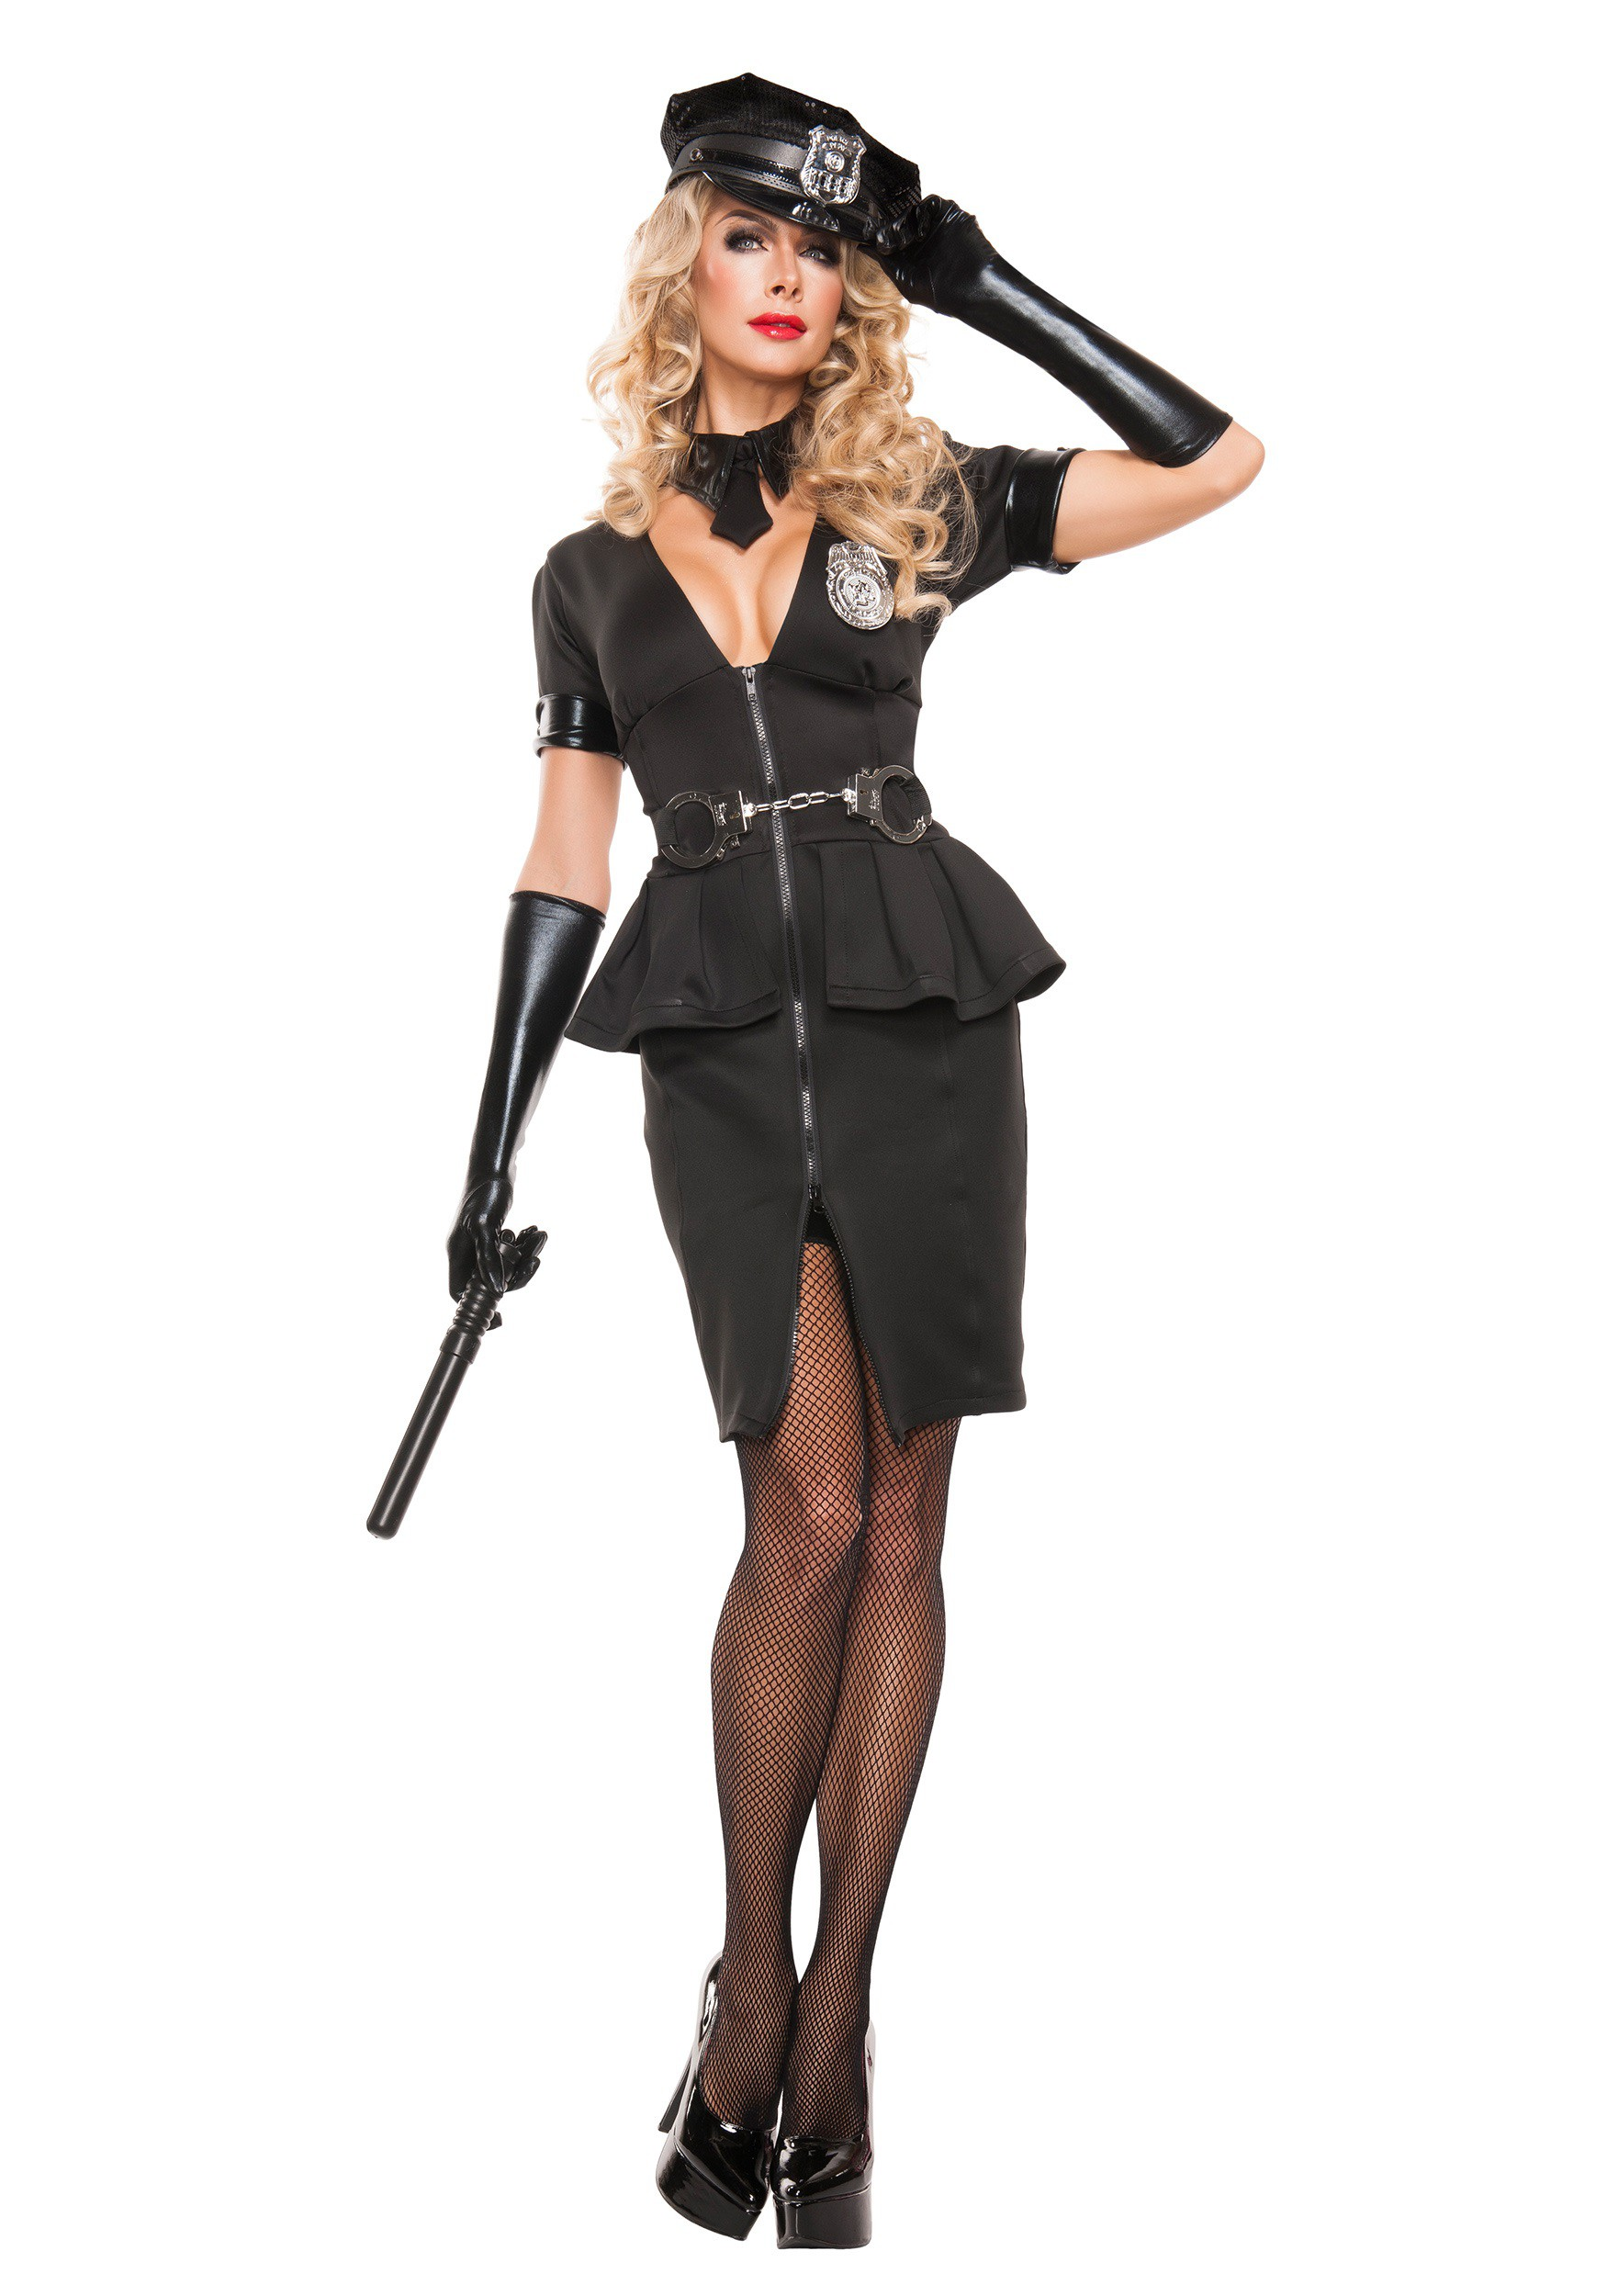 womens elegant cop costume - Girls Cop Halloween Costume